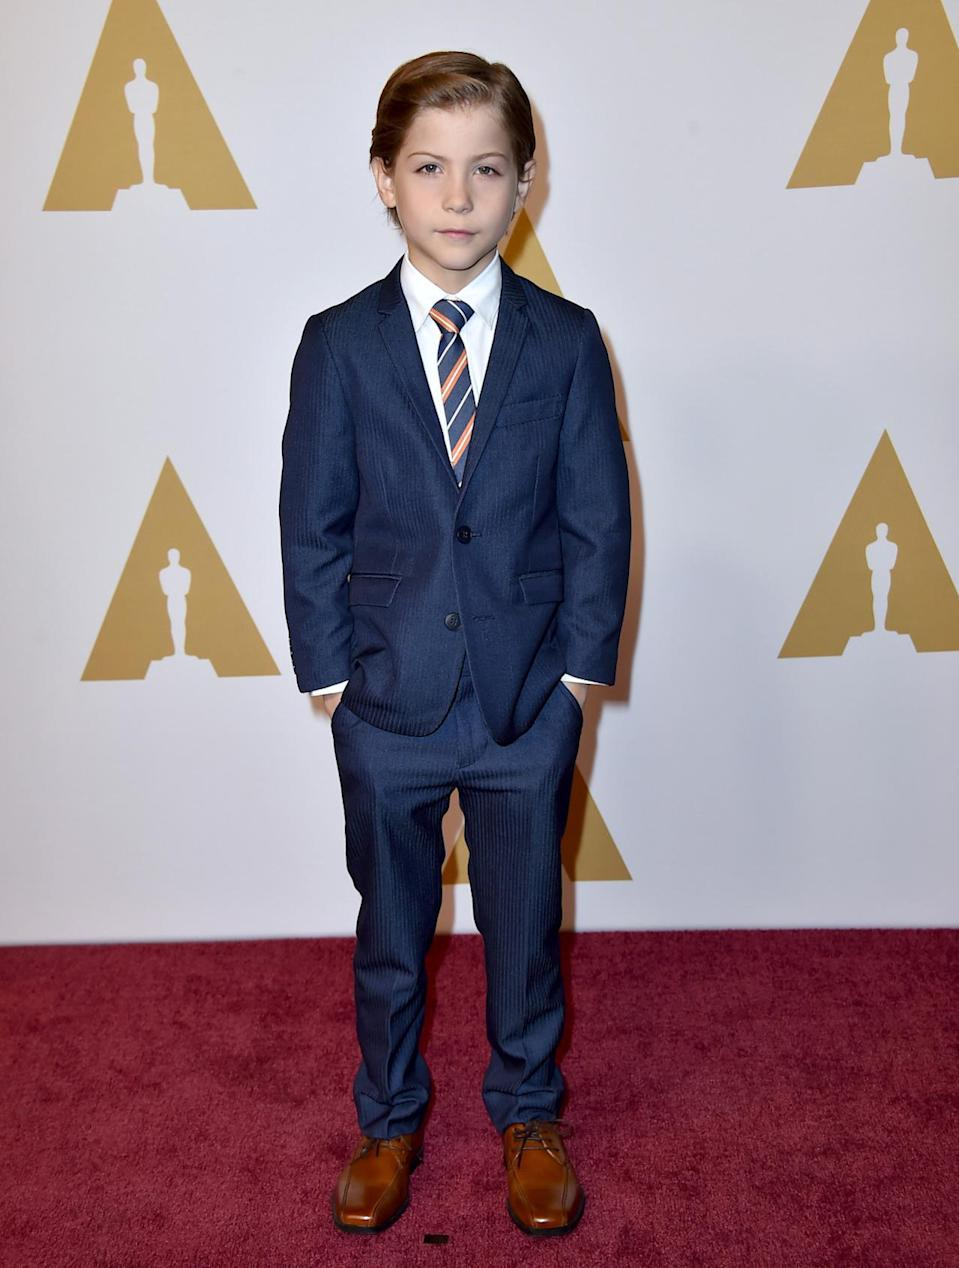 <p>If you're nominated for an Oscar, it's seemingly totally cool to skip school to attend a luncheon. <i>Photo: AP</i></p>